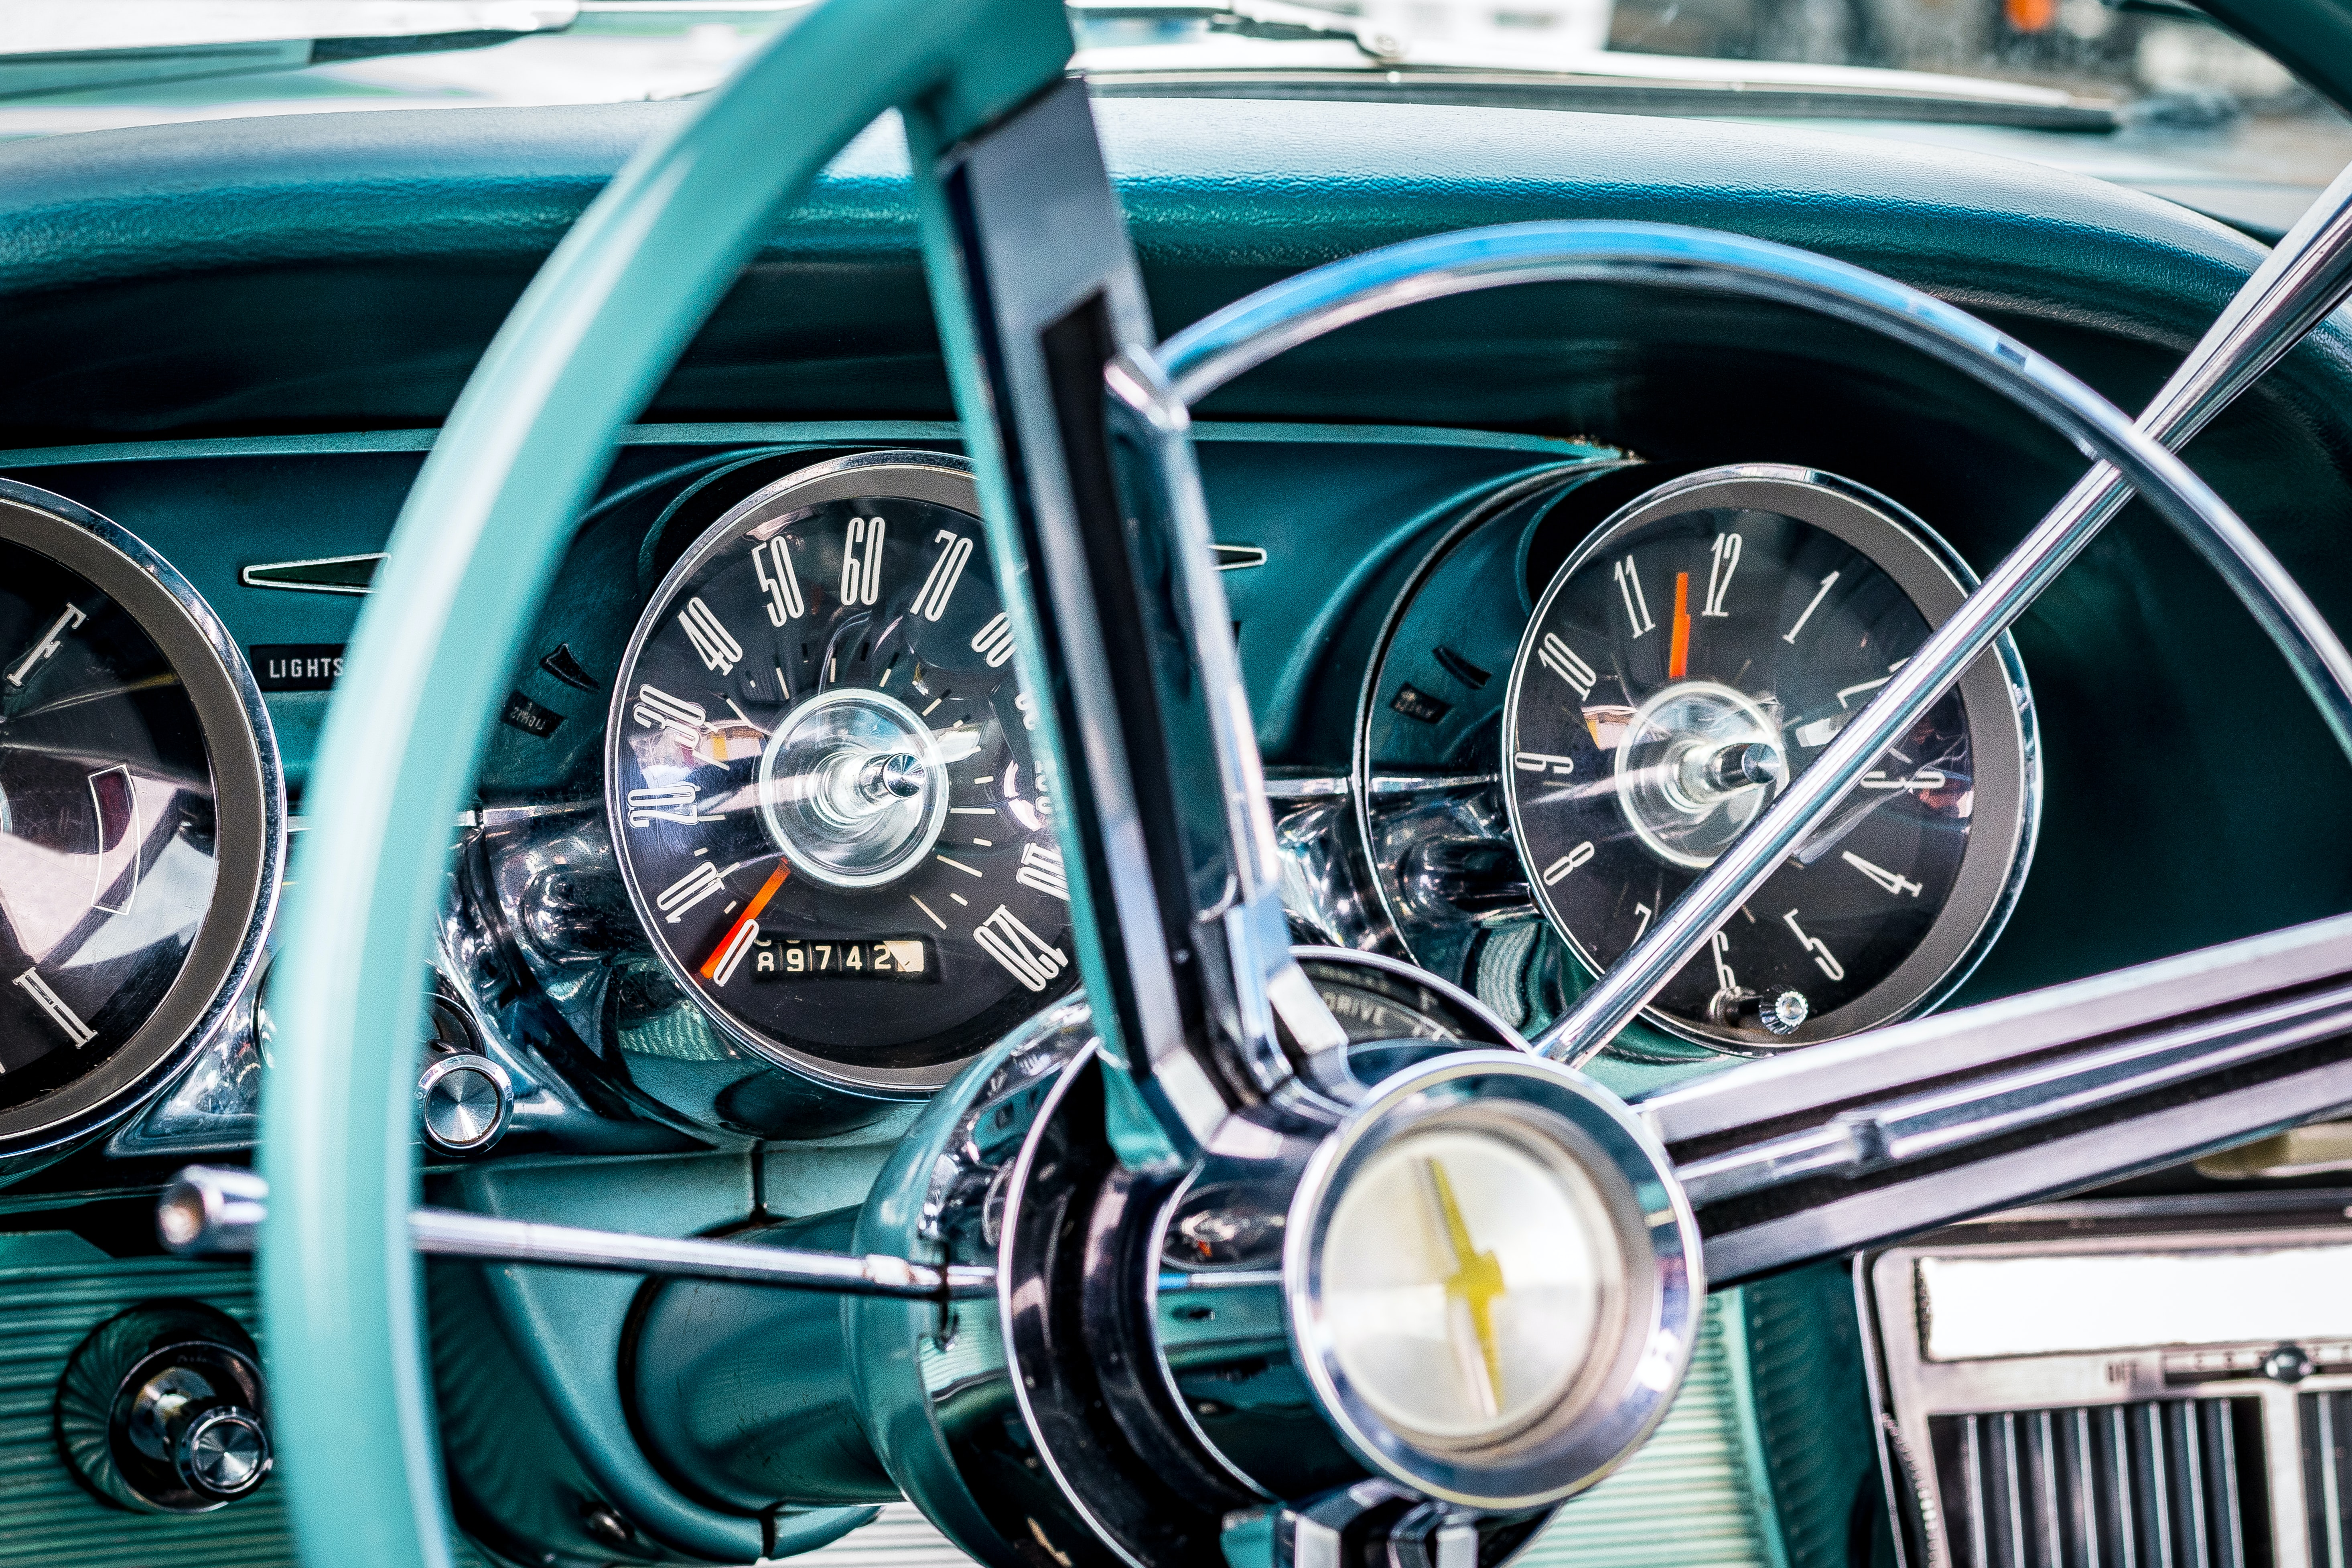 Macro shot of a turquoise-colored vintage steering wheel and dashboard.